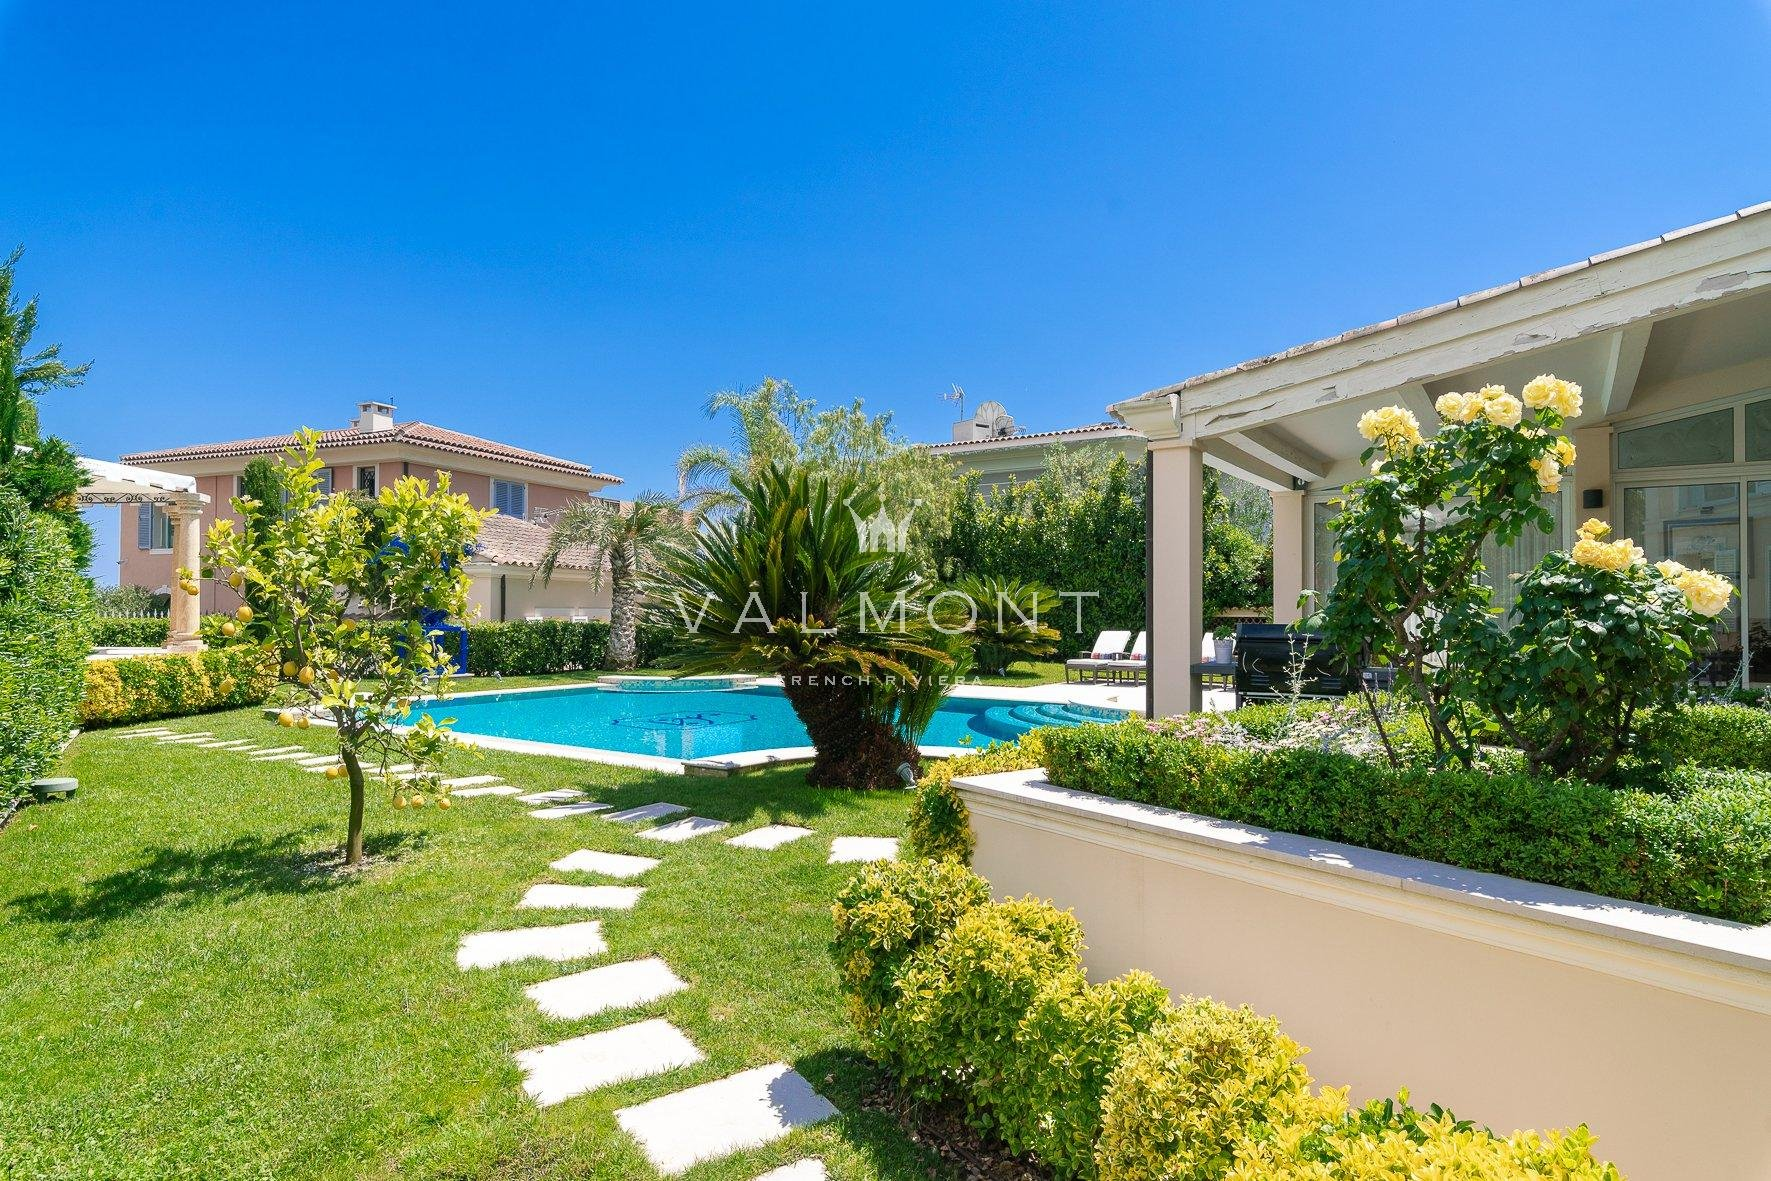 NEO-PROVENCAL PROPERTY NEAR THE BEACHES AND TOWN CENTER